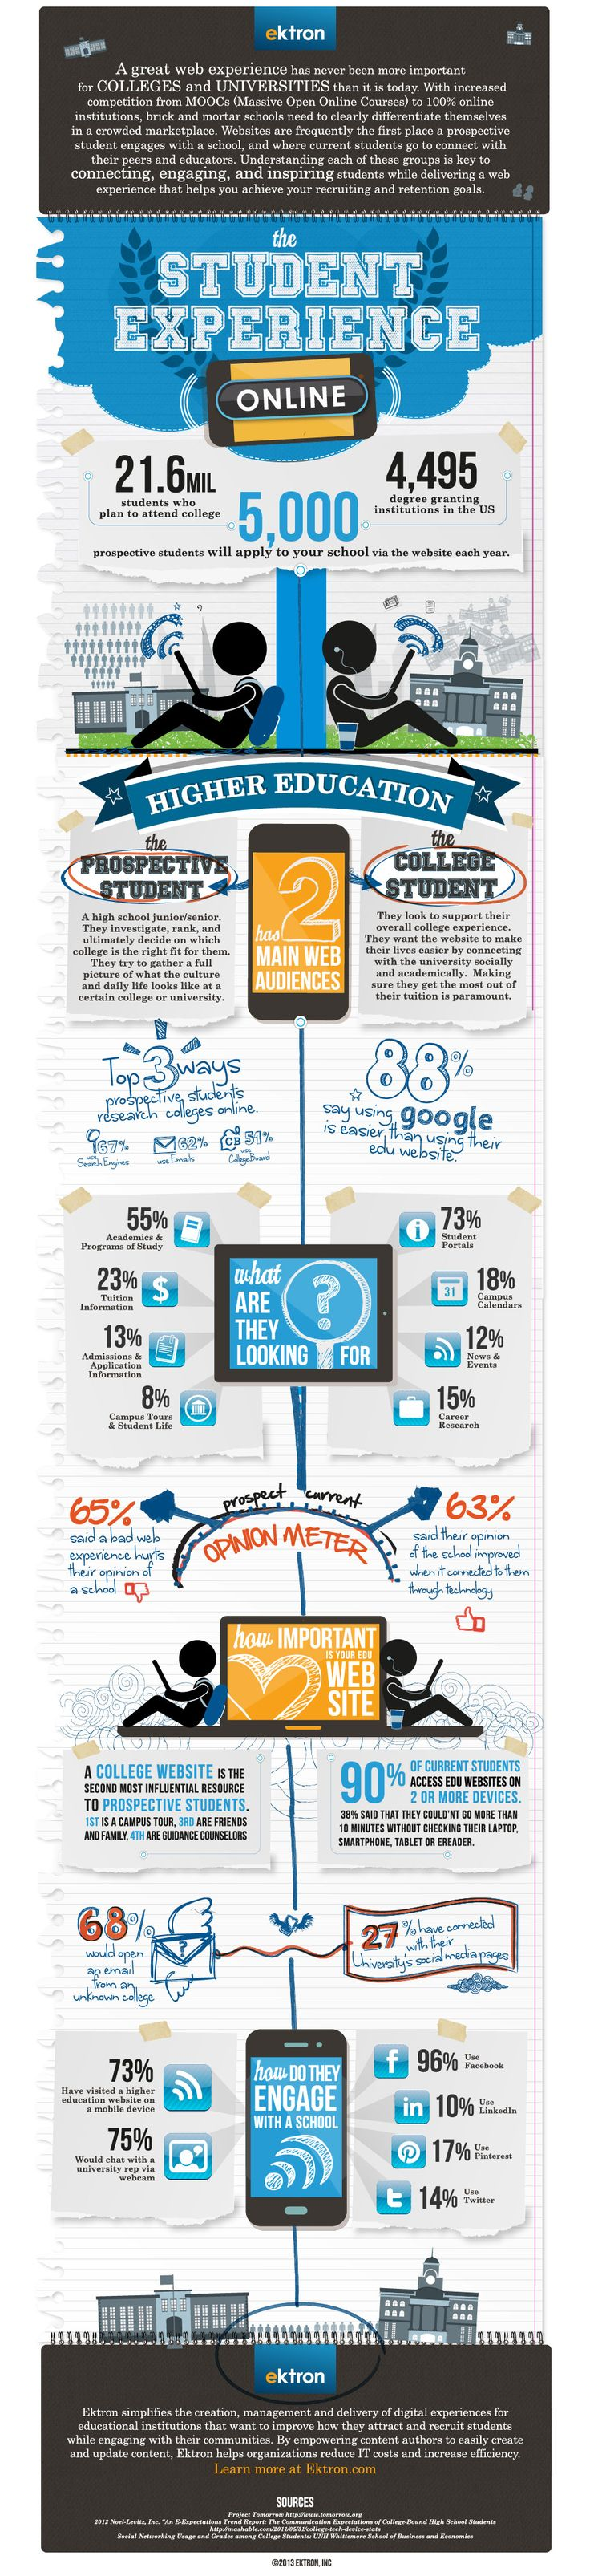 The Student Online Experience Infographic - http://elearninginfographics.com/student-online-experience-infographic/